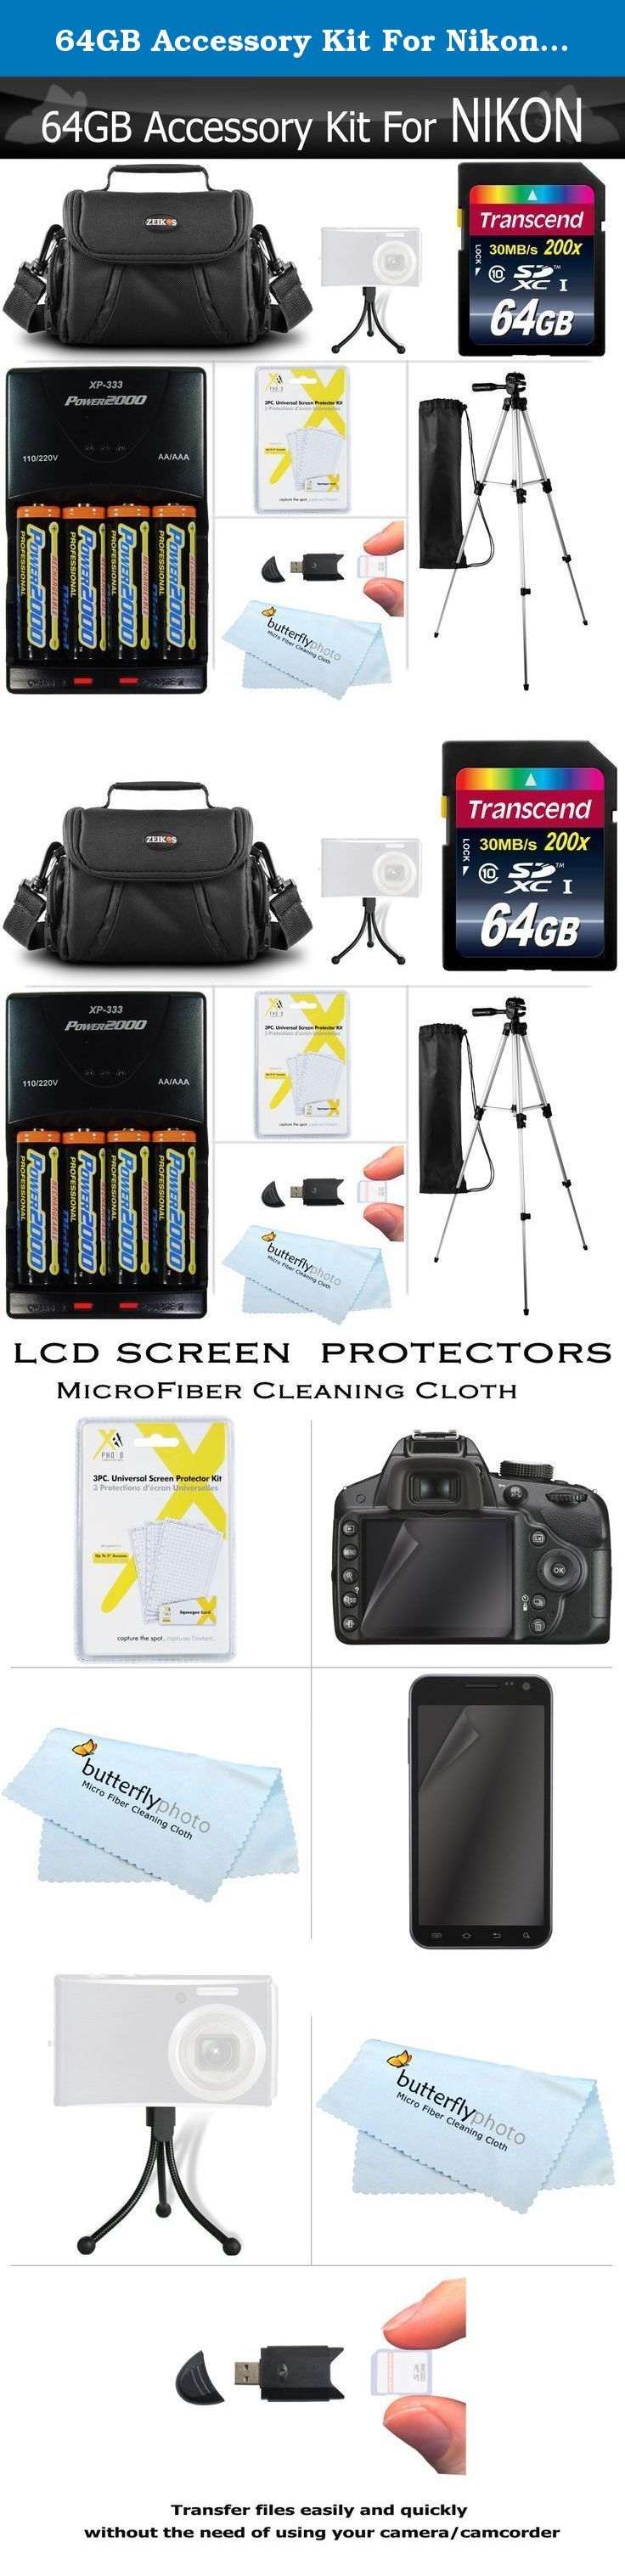 64GB Accessory Kit For Nikon Coolpix B500, L840, L830, L820, L340, L330, Digital Camera Includes 64GB High Speed SD Memory Card + 4AA Rechargeable NIMH Batteries + Rapid Charger + Case + Tripod ++. This Kit Includes Some Of The Essential Accessories You Need To Take Full Advantage Of Your New Nikon Coolpix B500, L330, L340, L100, L110, L120, L310, L810, L820, L620, L830, L840 Camera Kit Includes: 64GB (SDHC) High-Speed Class 10 Memory Card: - Unleash your cameras full potential. You can…